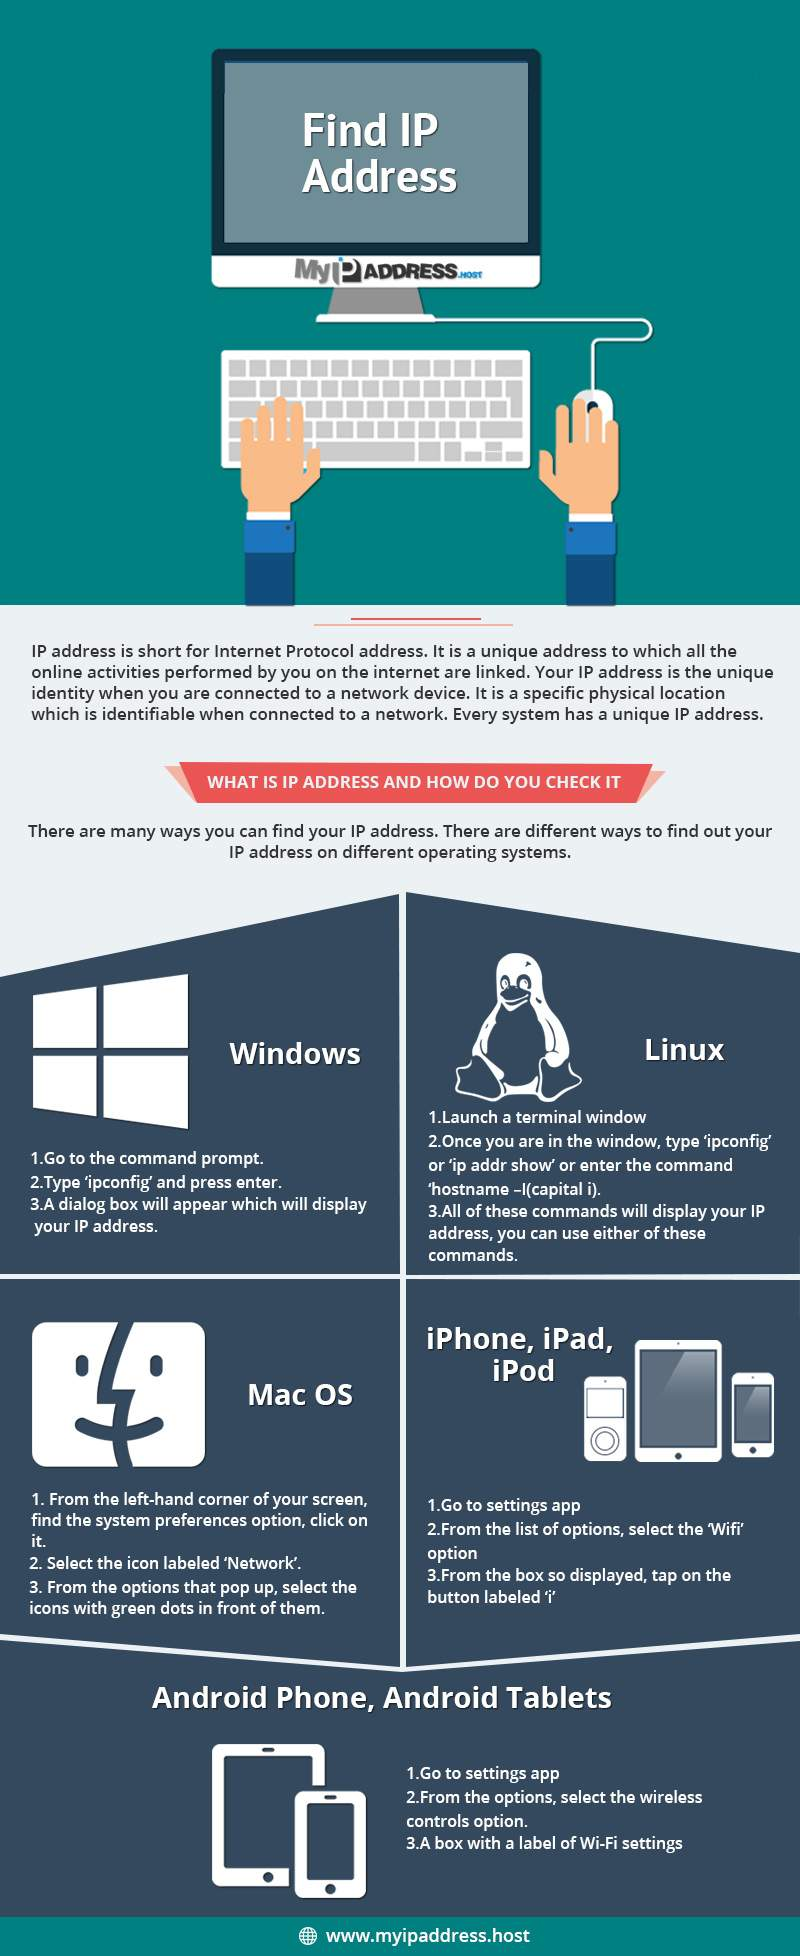 What Is IP Address And How DO You Check It – Infographic Portal